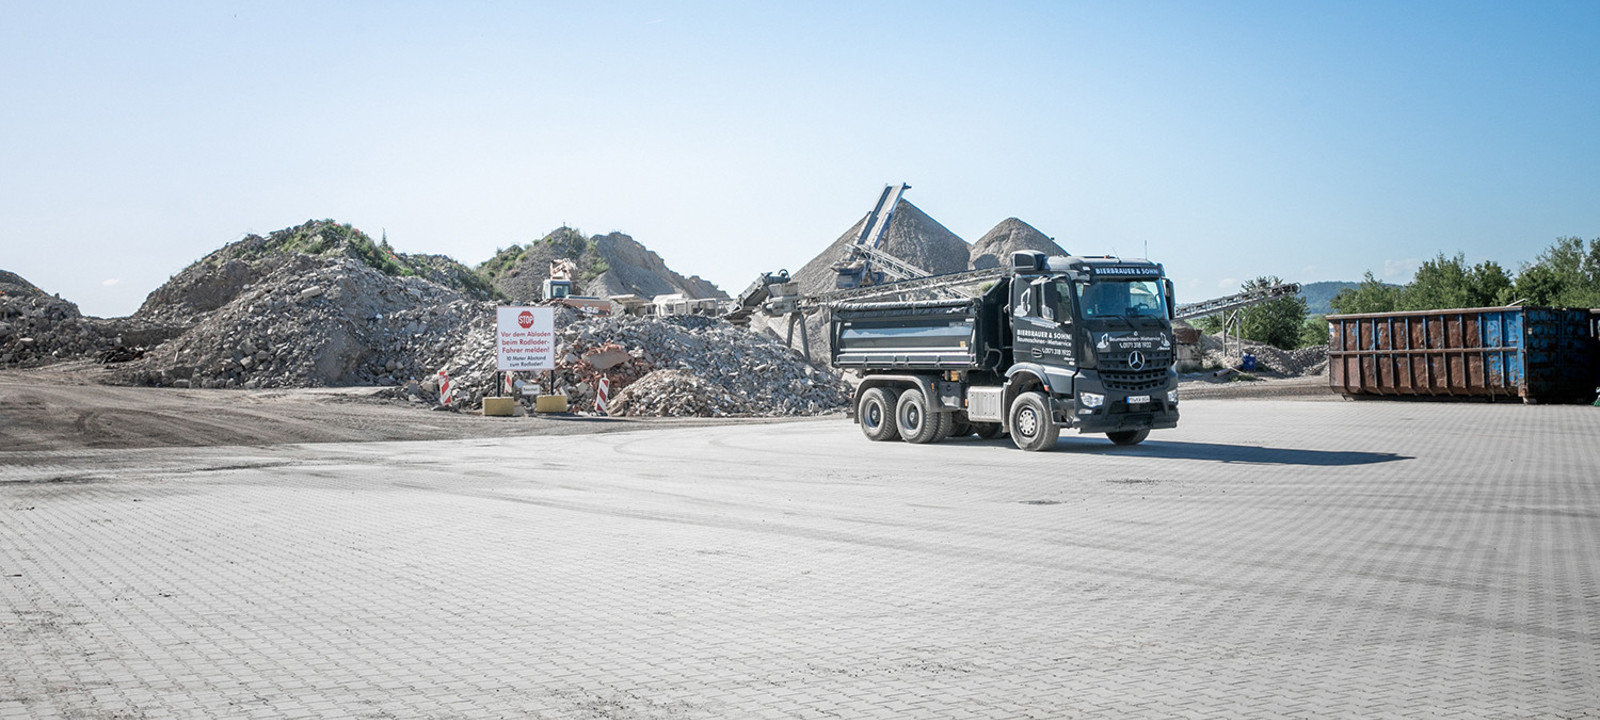 Recyclinghof Anlieferung